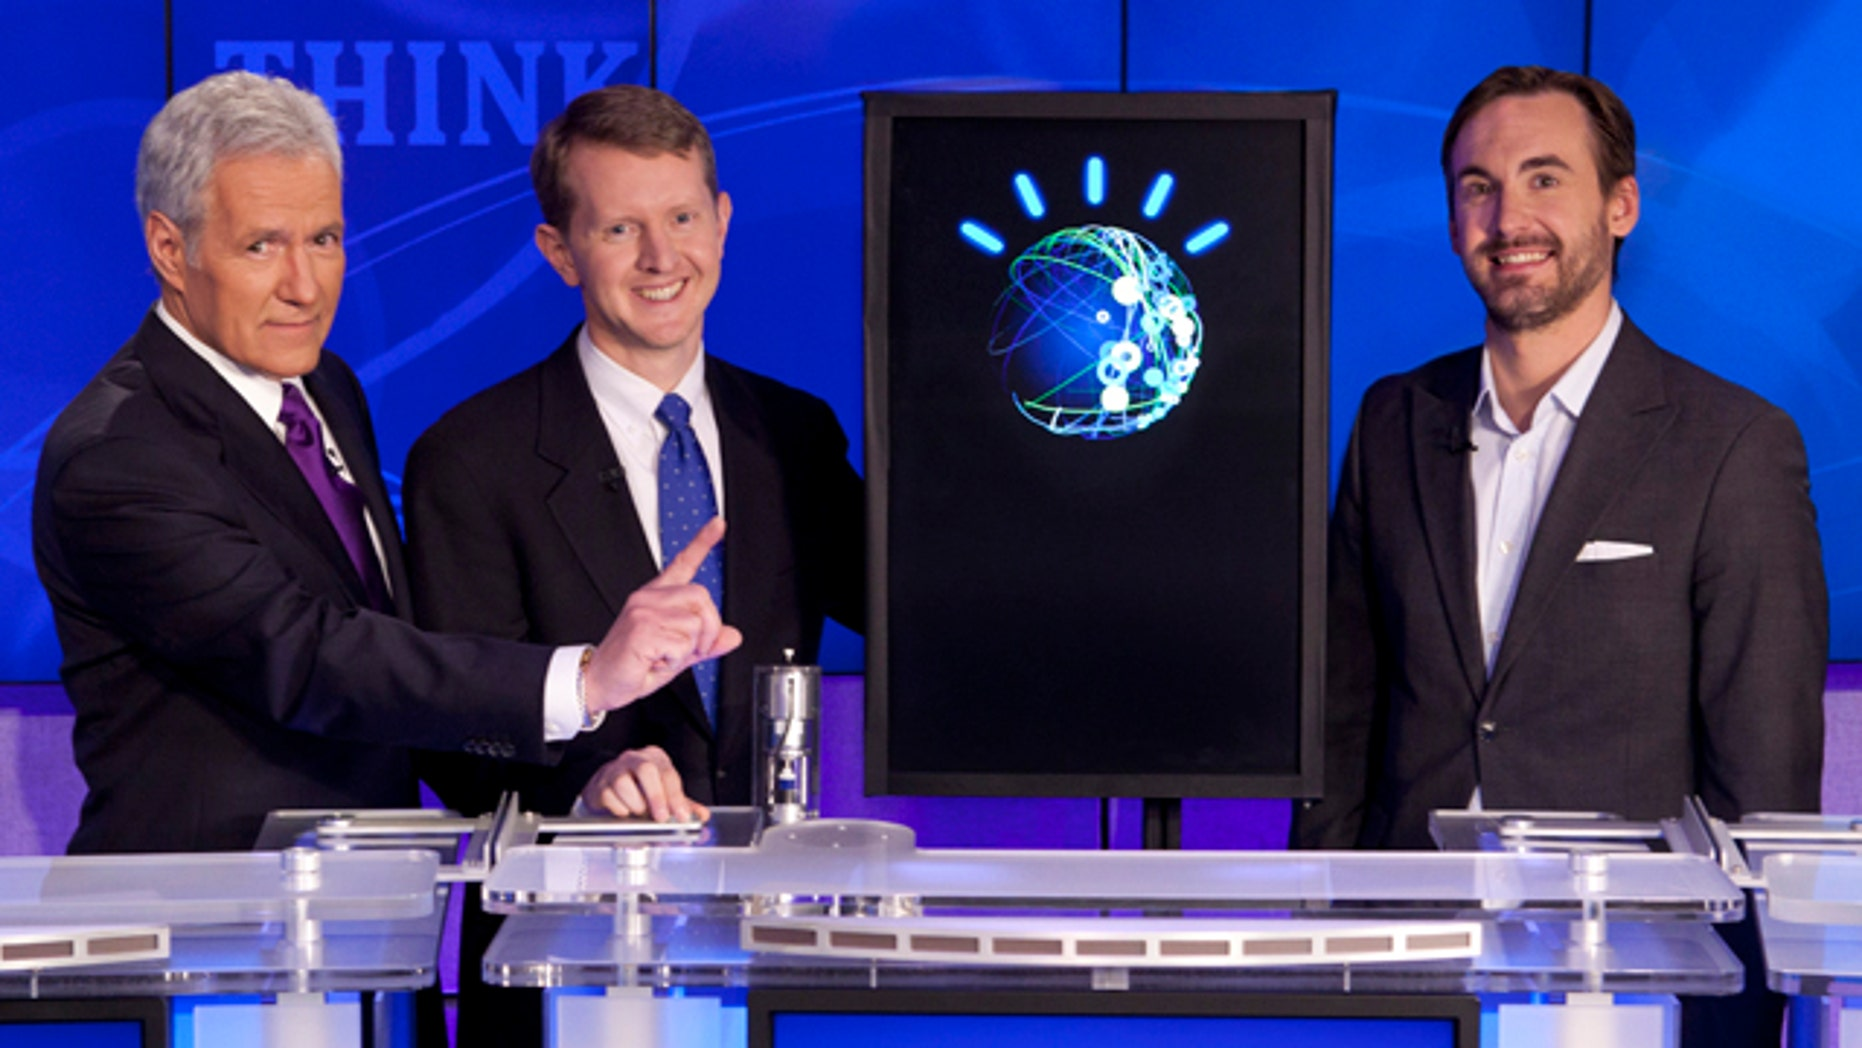 In this undated publicity image released by Jeopardy Productions, Inc., host Alex Trebek, left, poses with contestants Ken Jennings, center, and Brad Rutter and a computer named Watson in Yorktown Heights, N.Y.